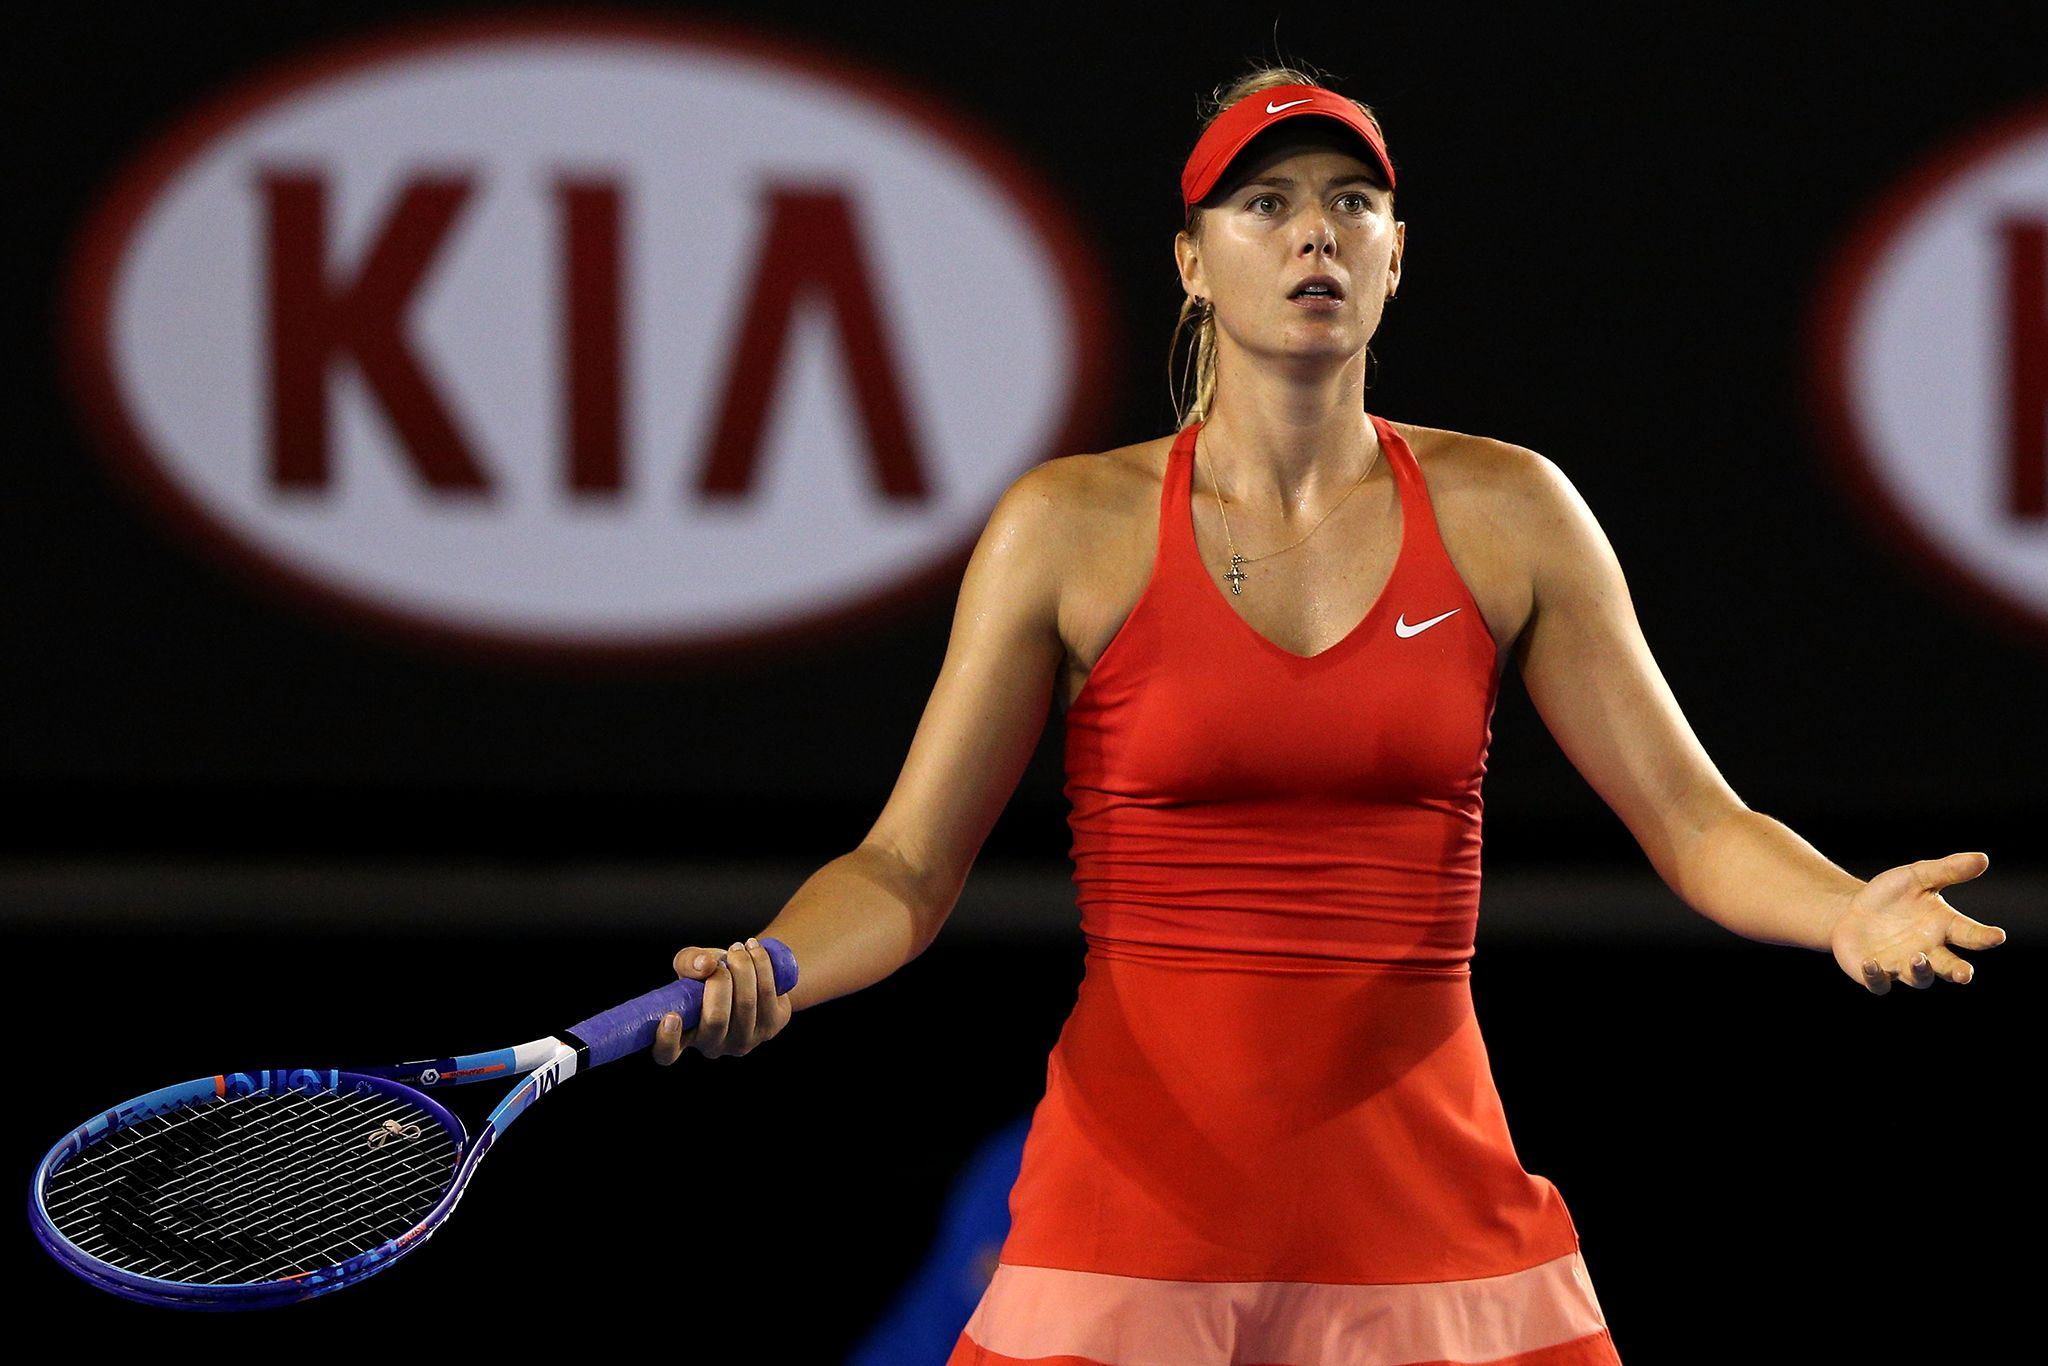 AUSOPEN Maria Sharapova, F, 31 January 2015.  - Getty Images